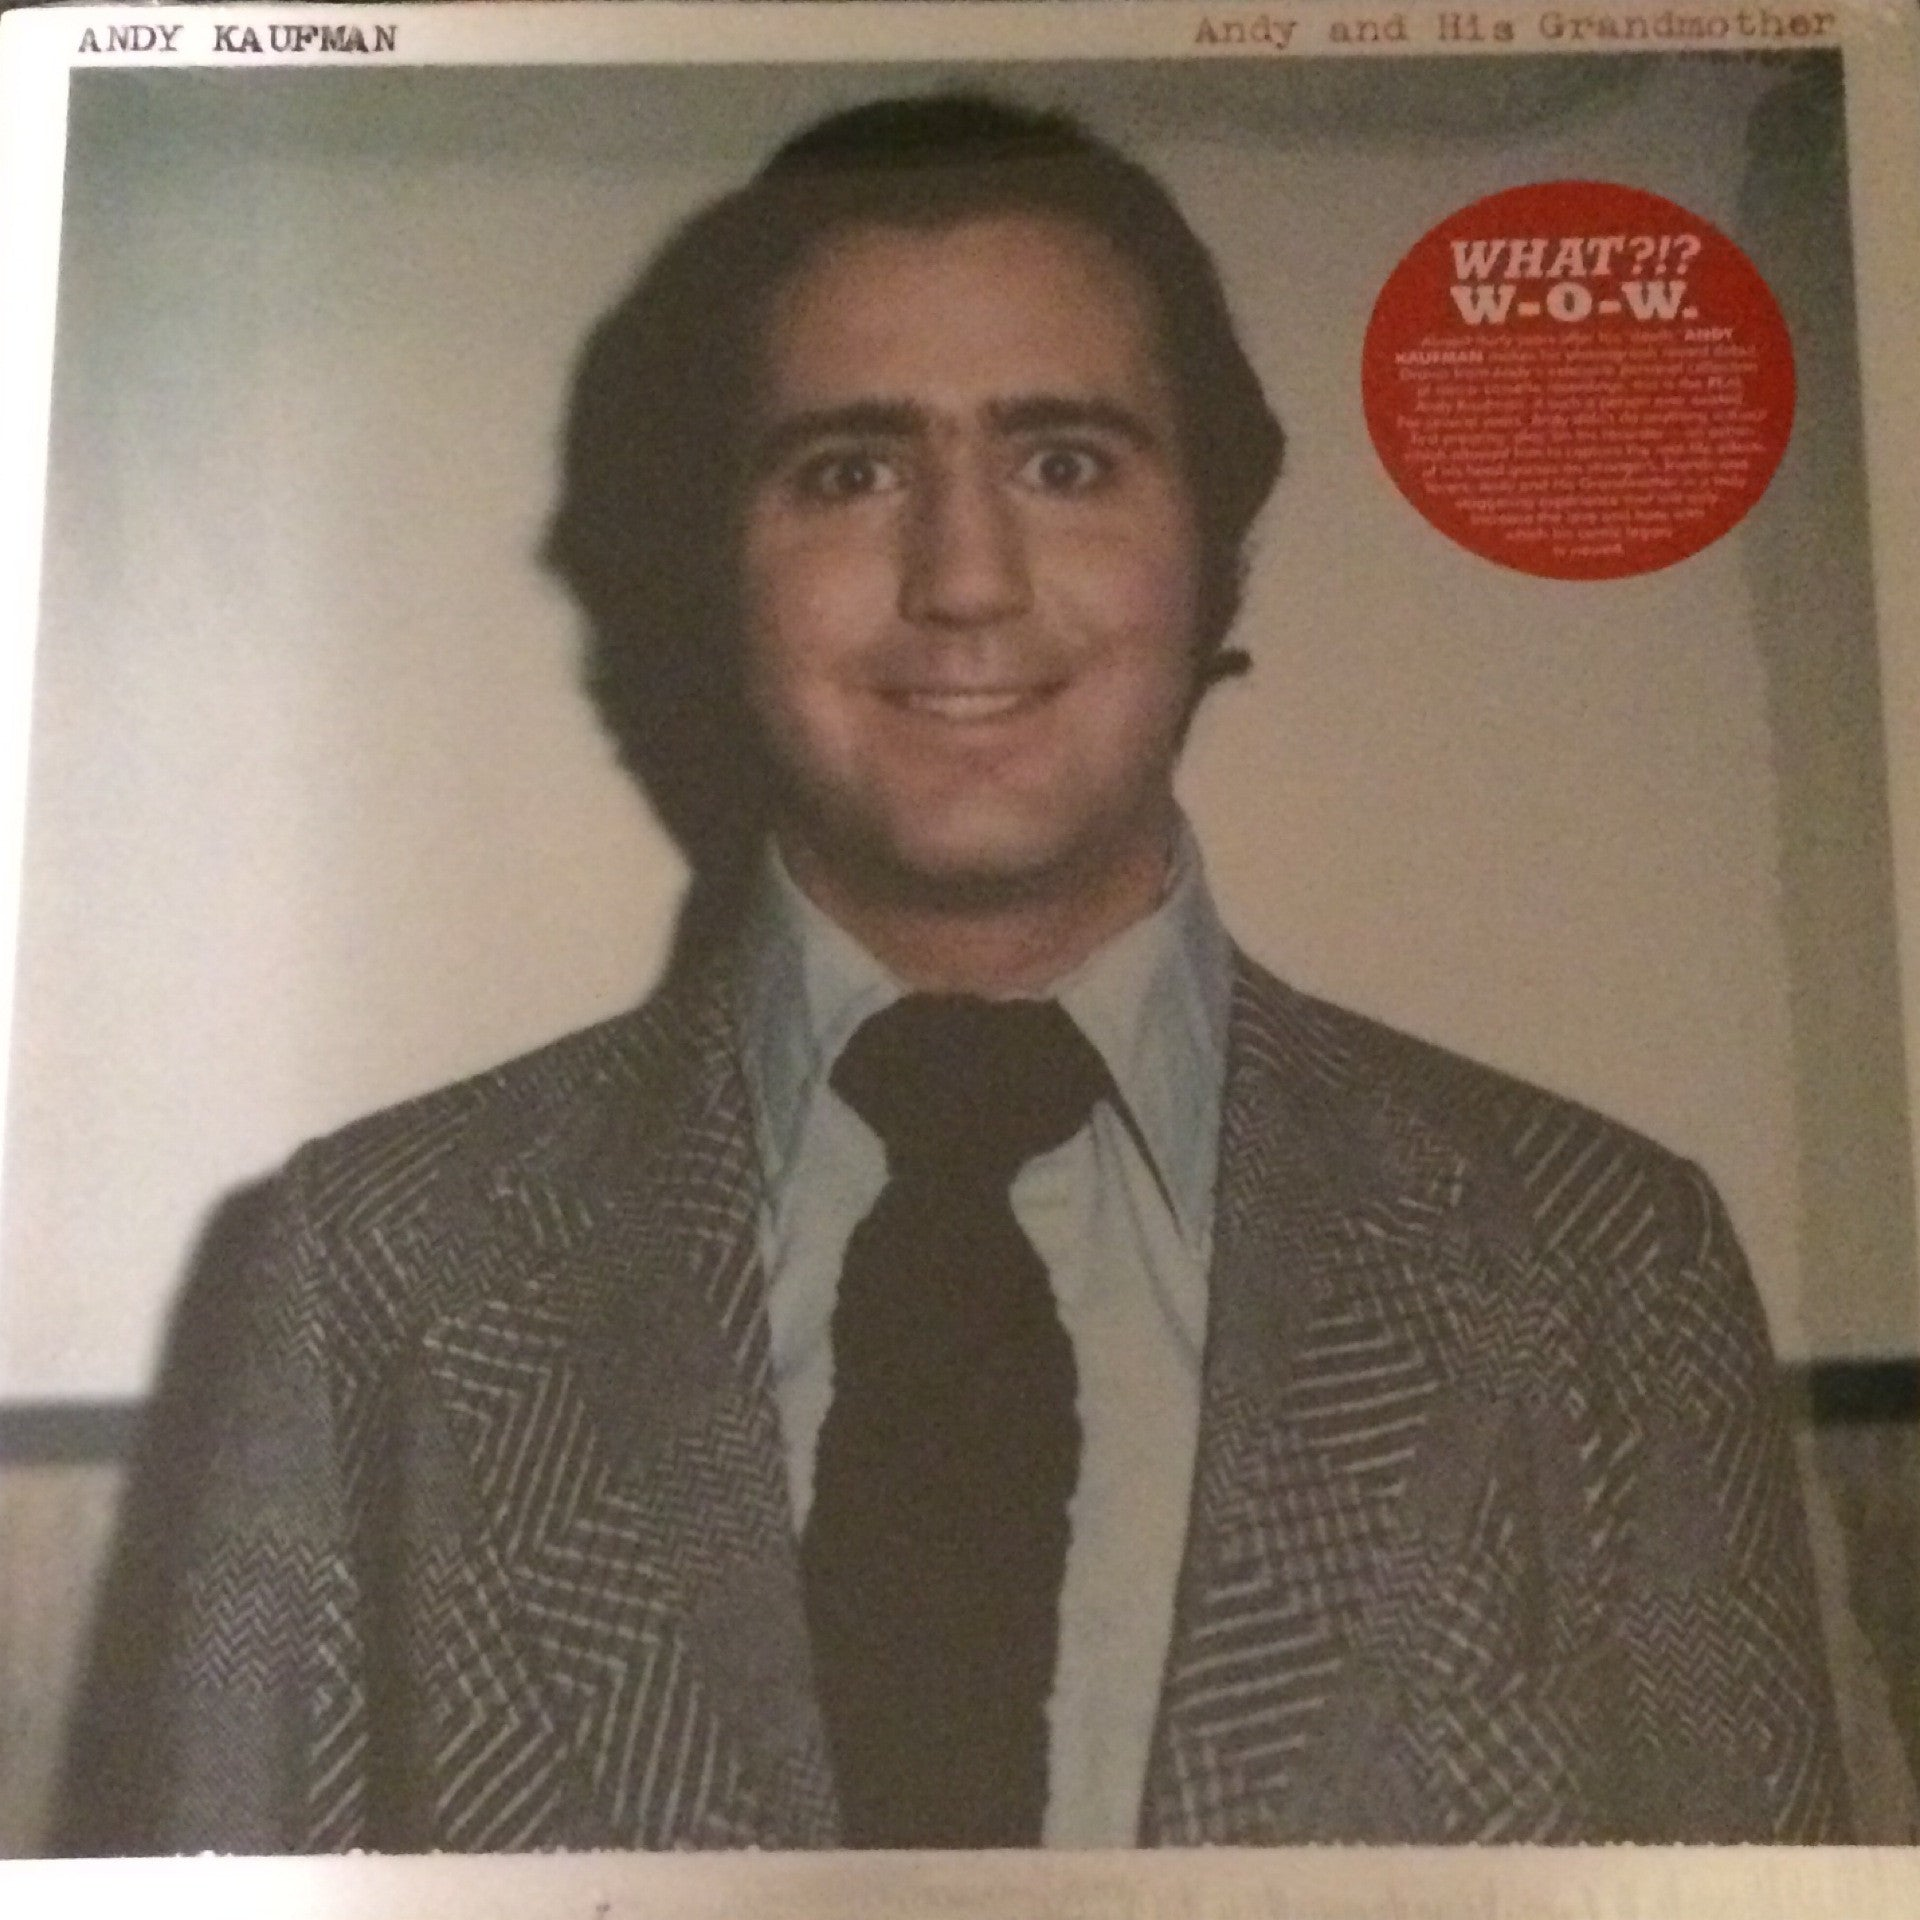 Andy Kaufman - Andy And His Grandmother LP